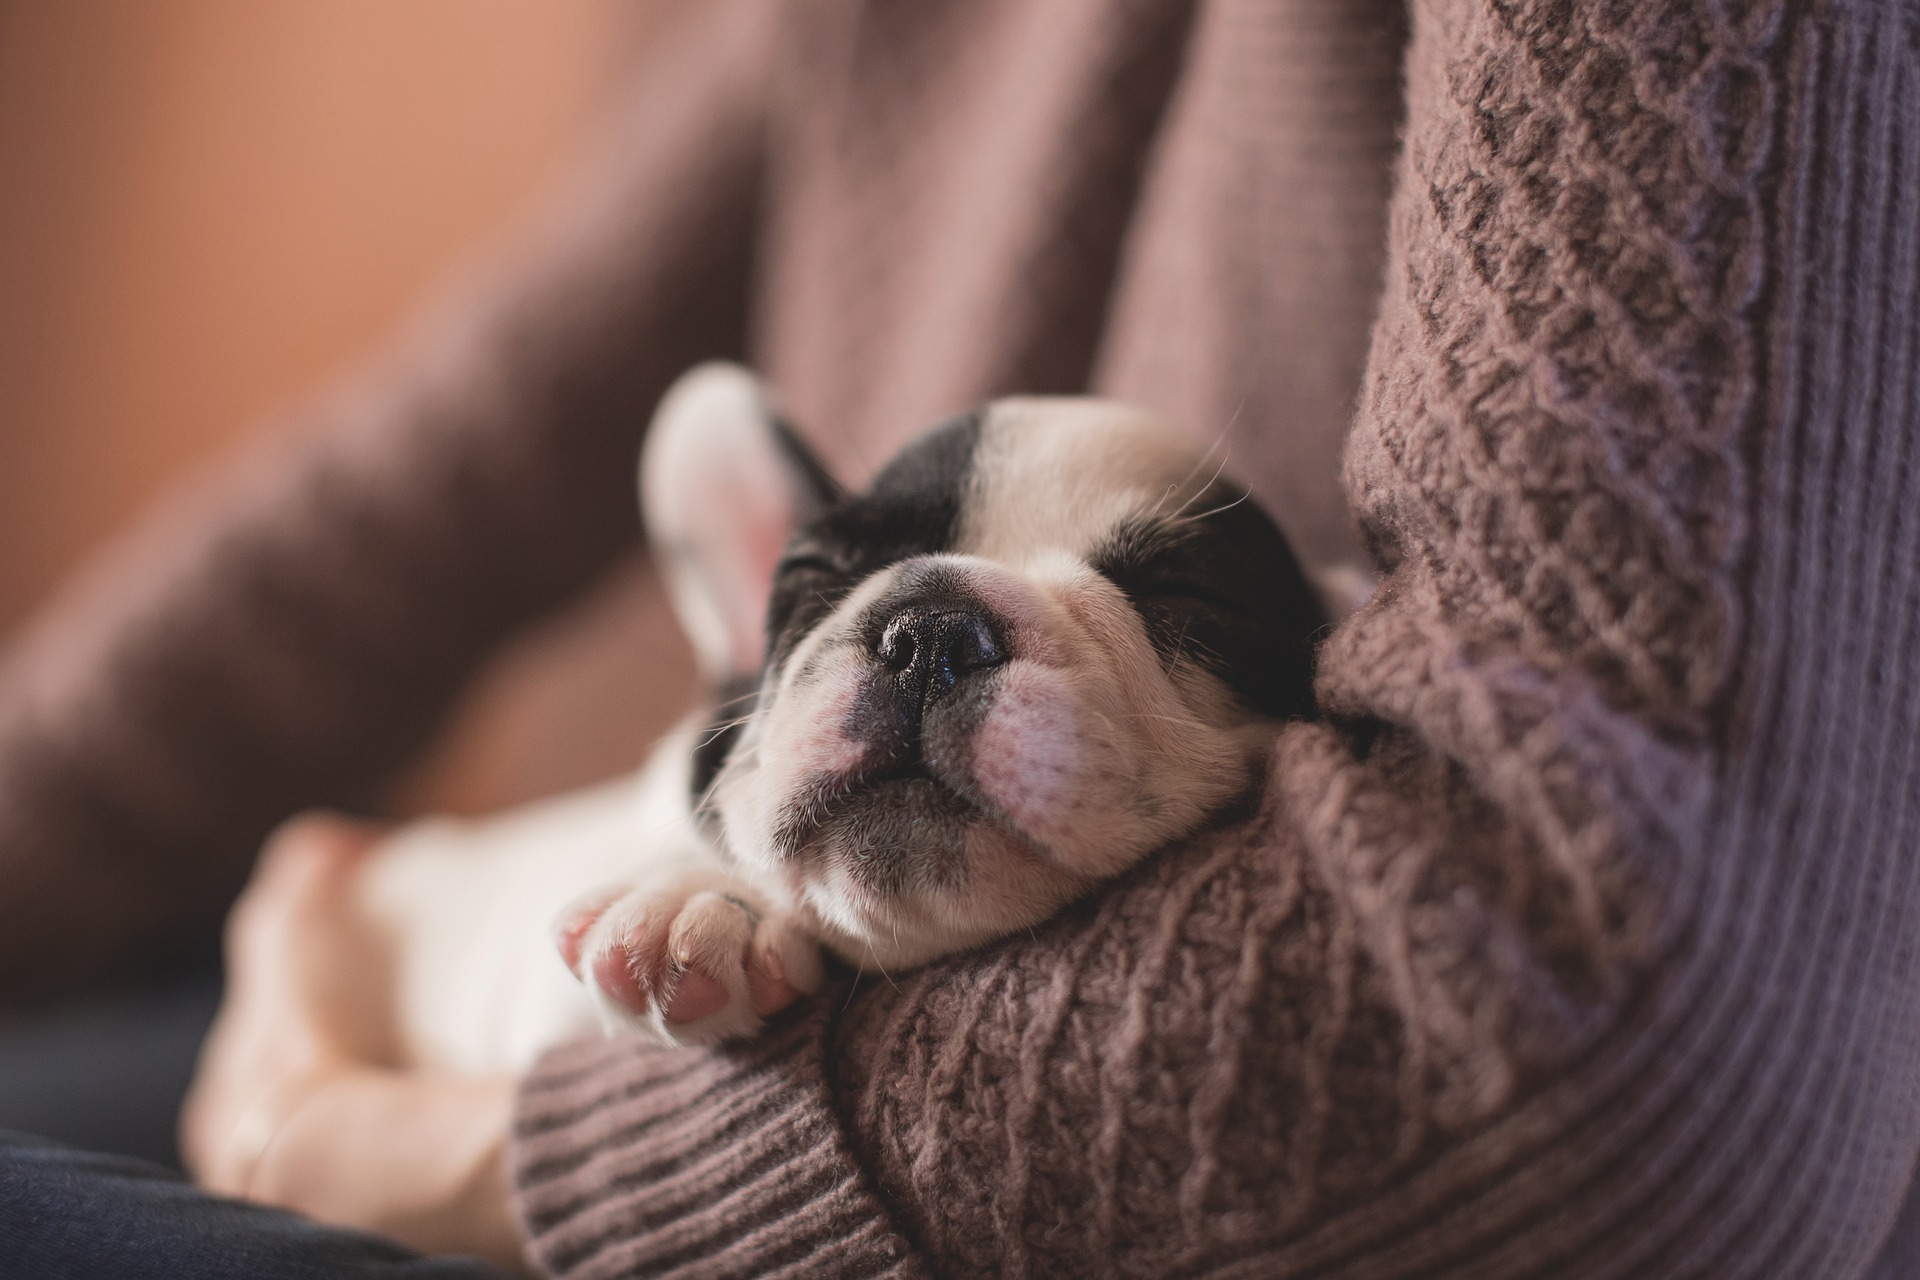 How To Help Your New Puppy Sleep Through The Night